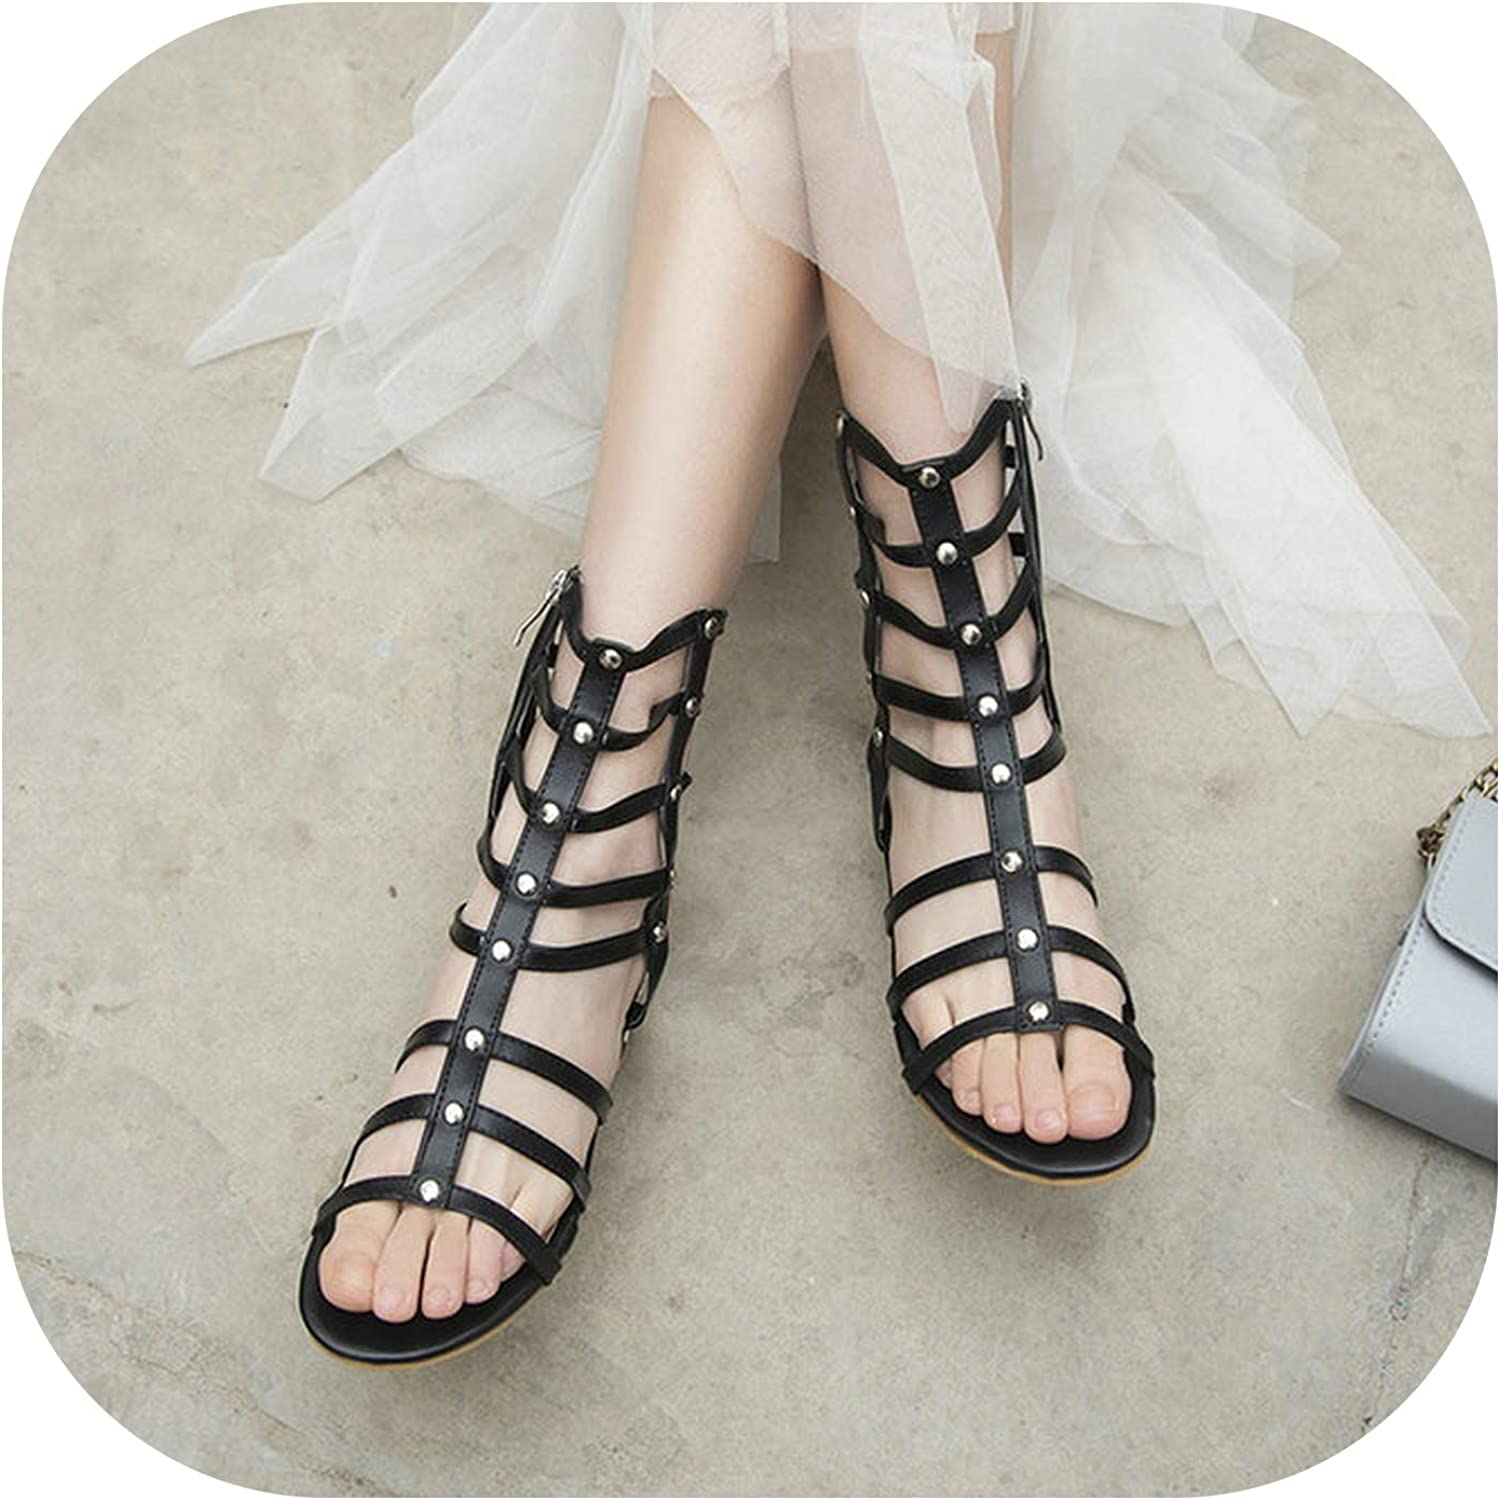 2019 Summer Gladiator Sandals Female Open Toe Low Heels Zipper Casual shoes Women White Black Brown Size 34-43,Black,10